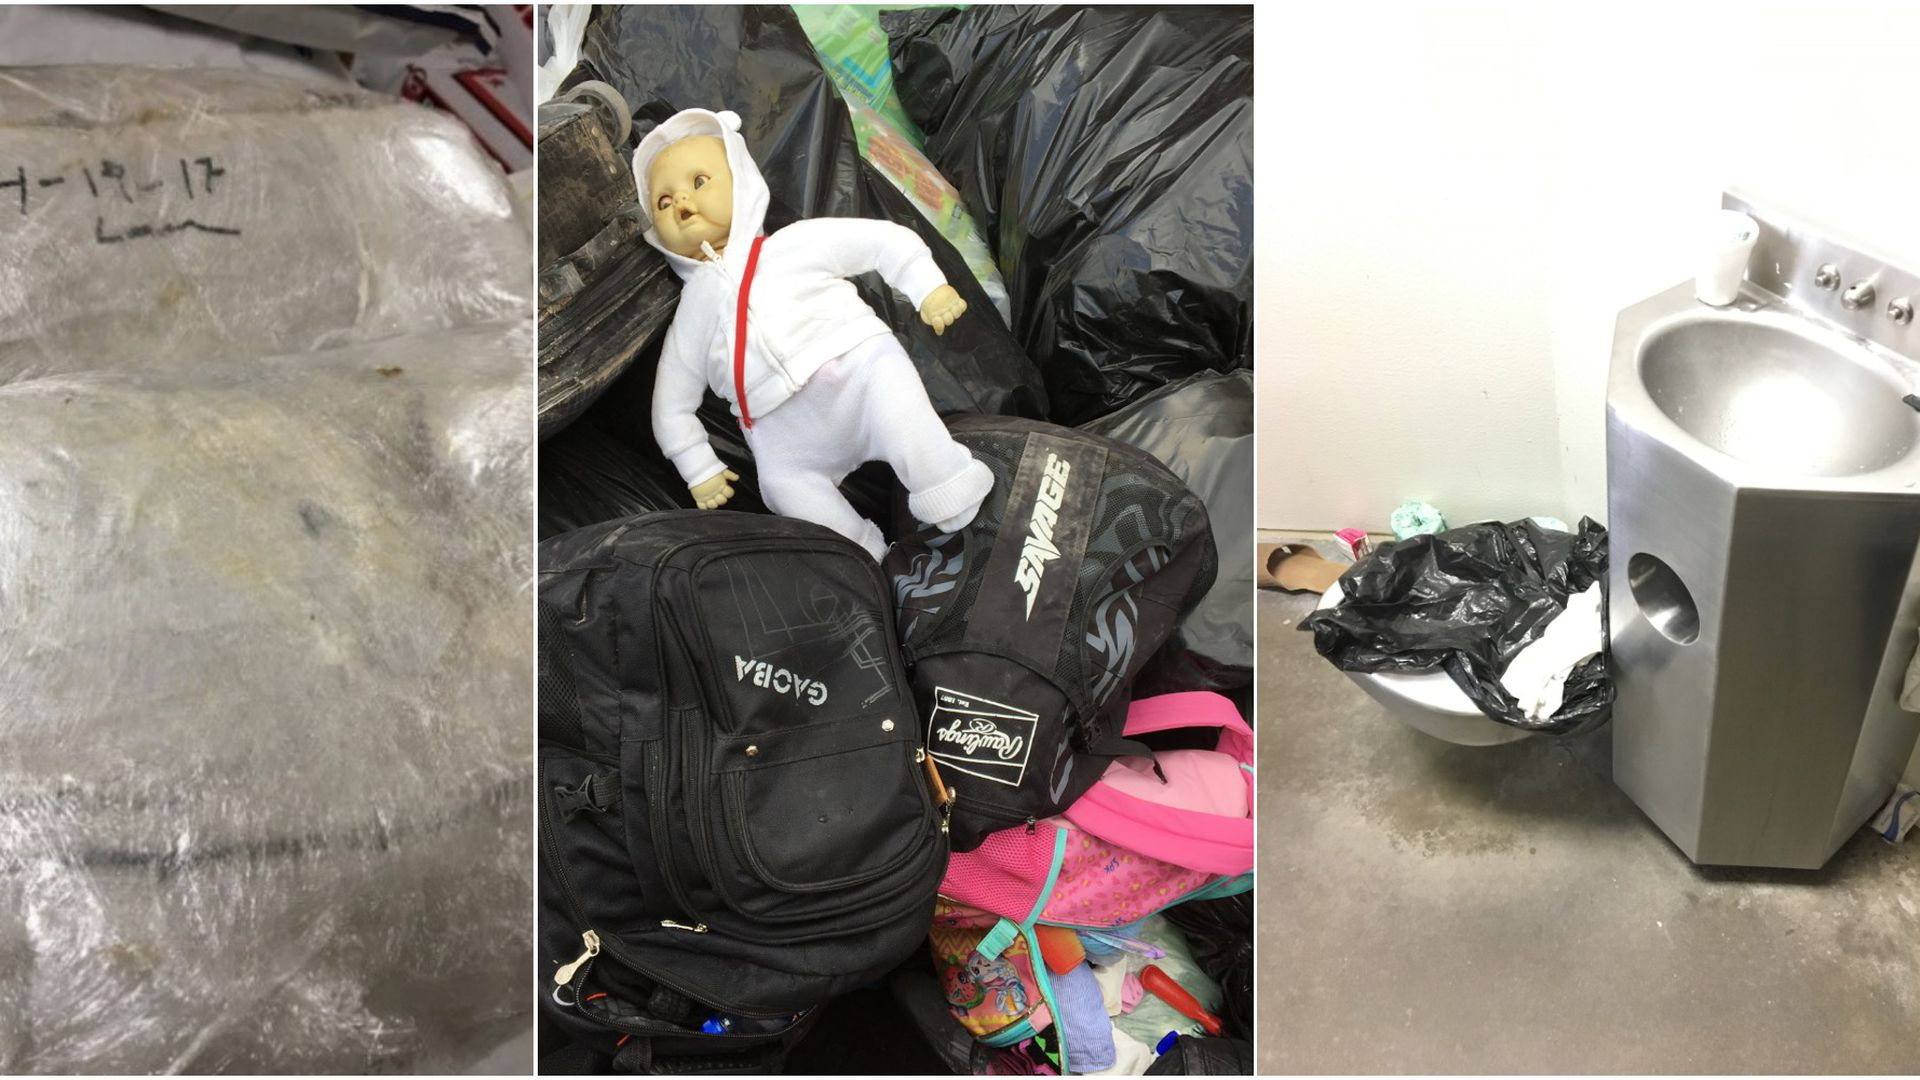 A three part image showing expired bags of food, a pile of discarded luggage and a dirty bathroom.